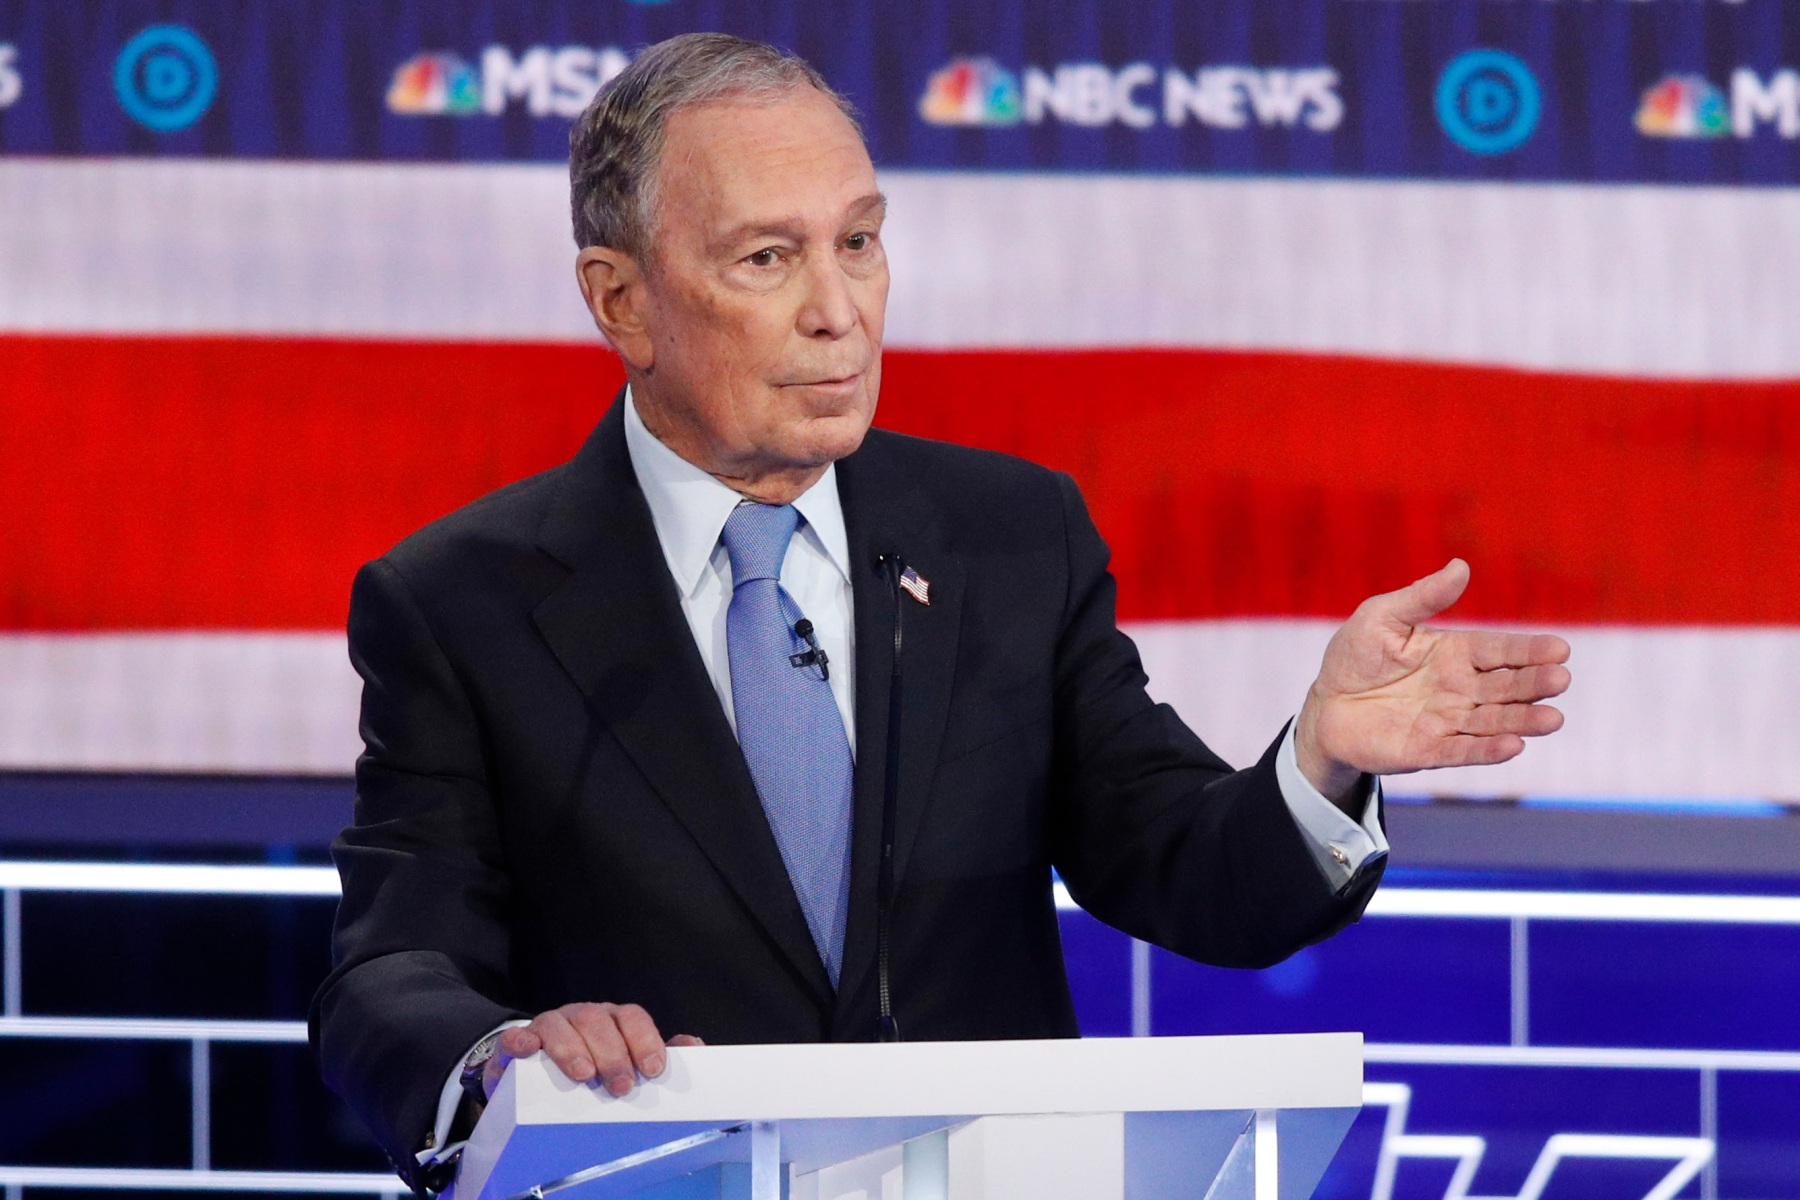 Democratic presidential candidate, former New York City Mayor Michael Bloomberg speaks during a Democratic presidential primary debate, in Las Vegas, hosted by NBC News and MSNBCElection 2020 Debate, Las Vegas, USA - 19 Feb 2020